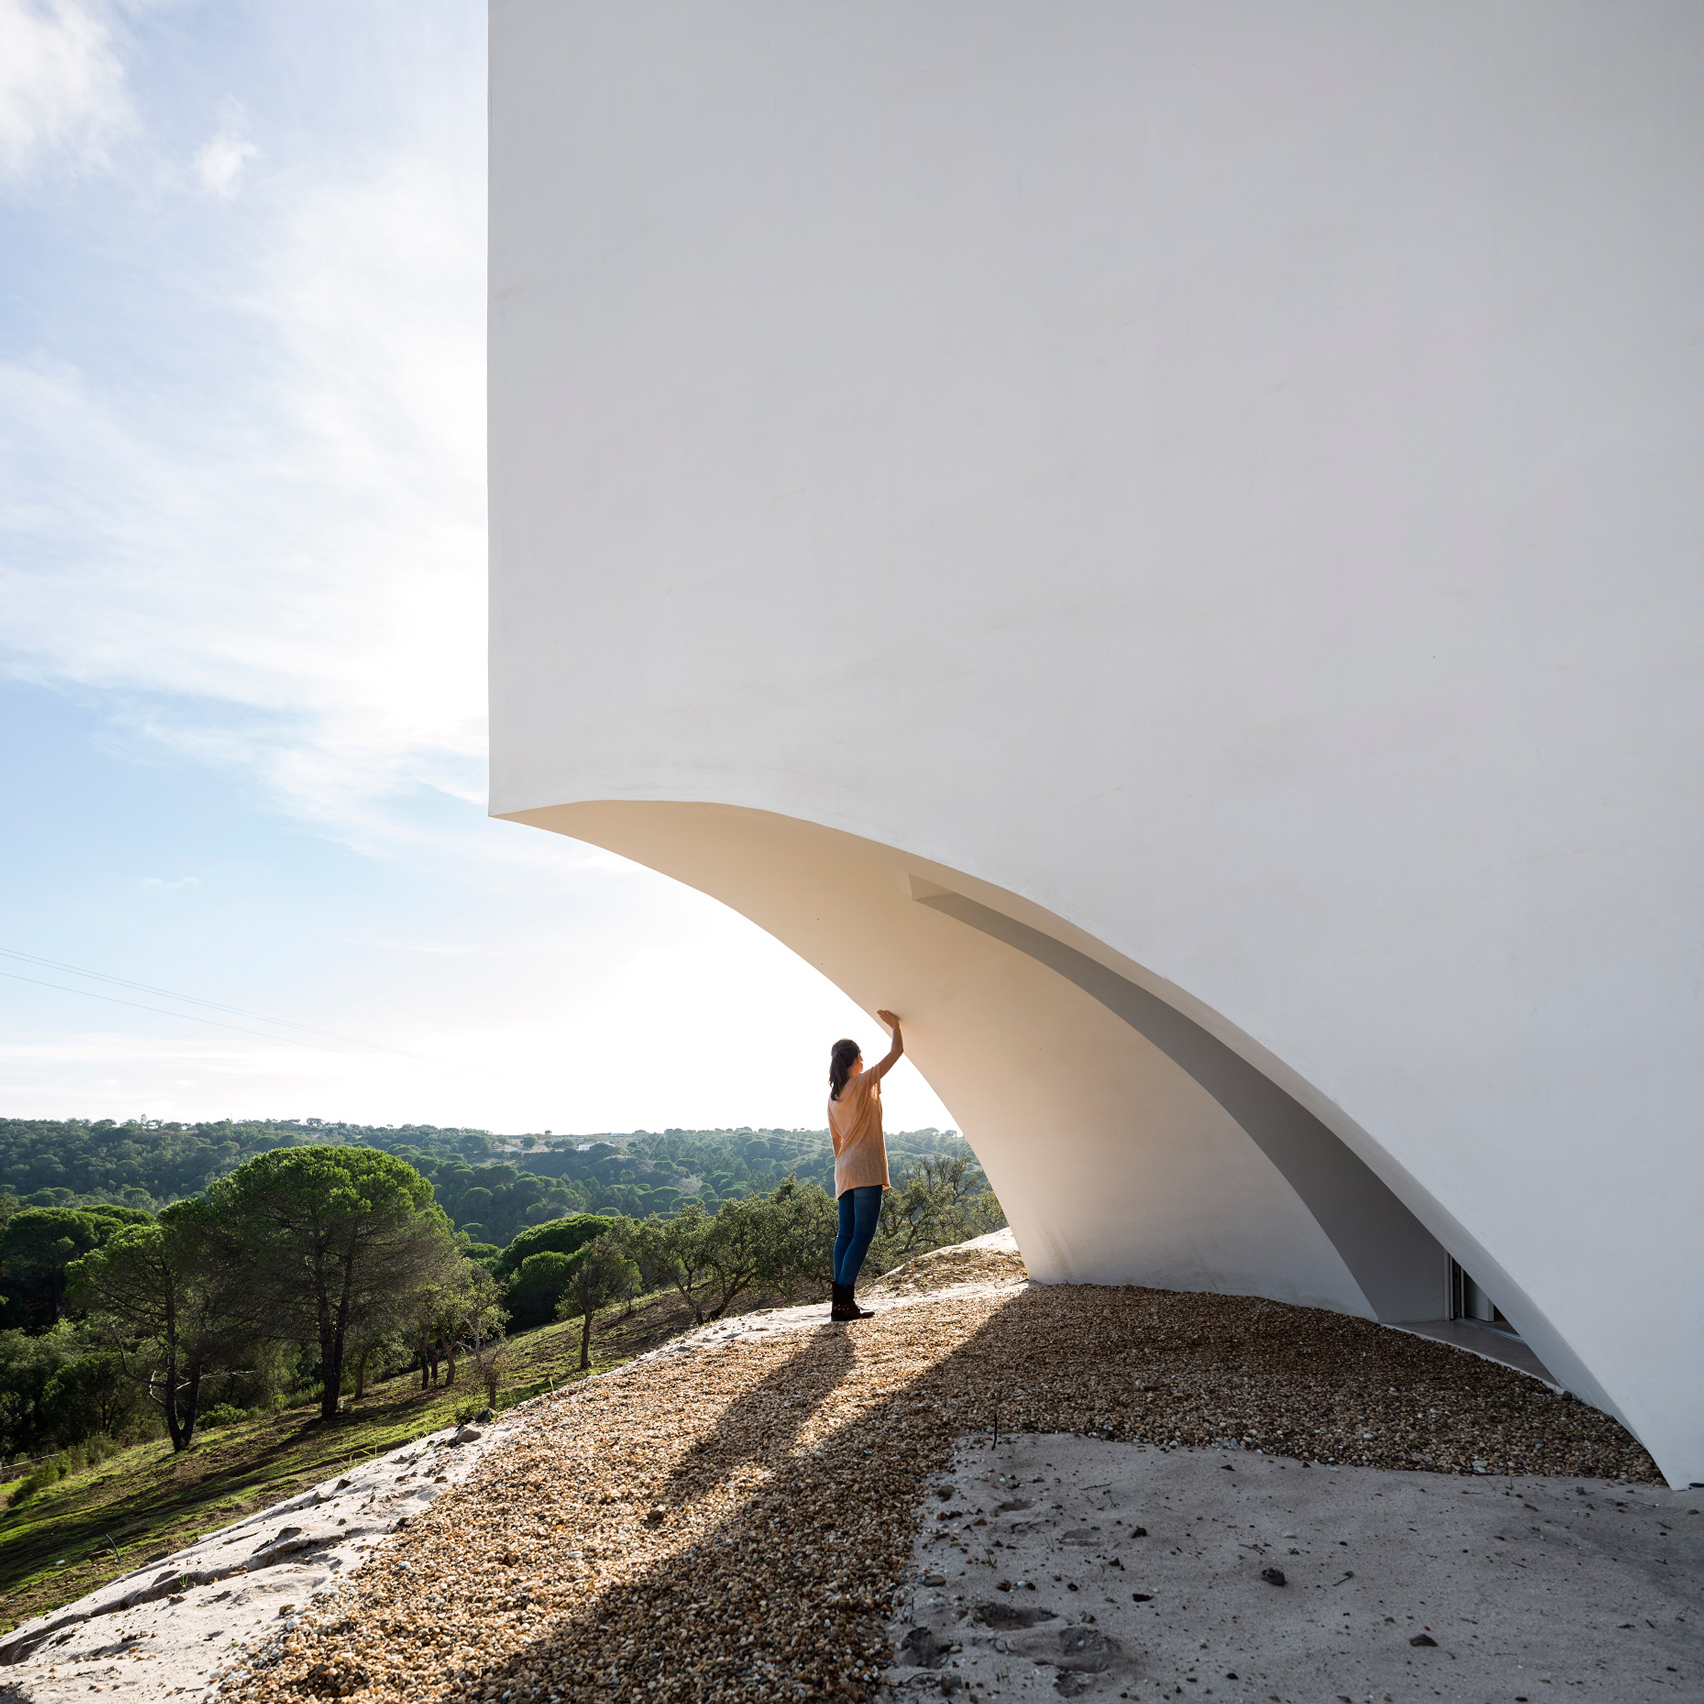 Minimal Architecture dezeen's latest pinterest board focuses purely on minimalist design